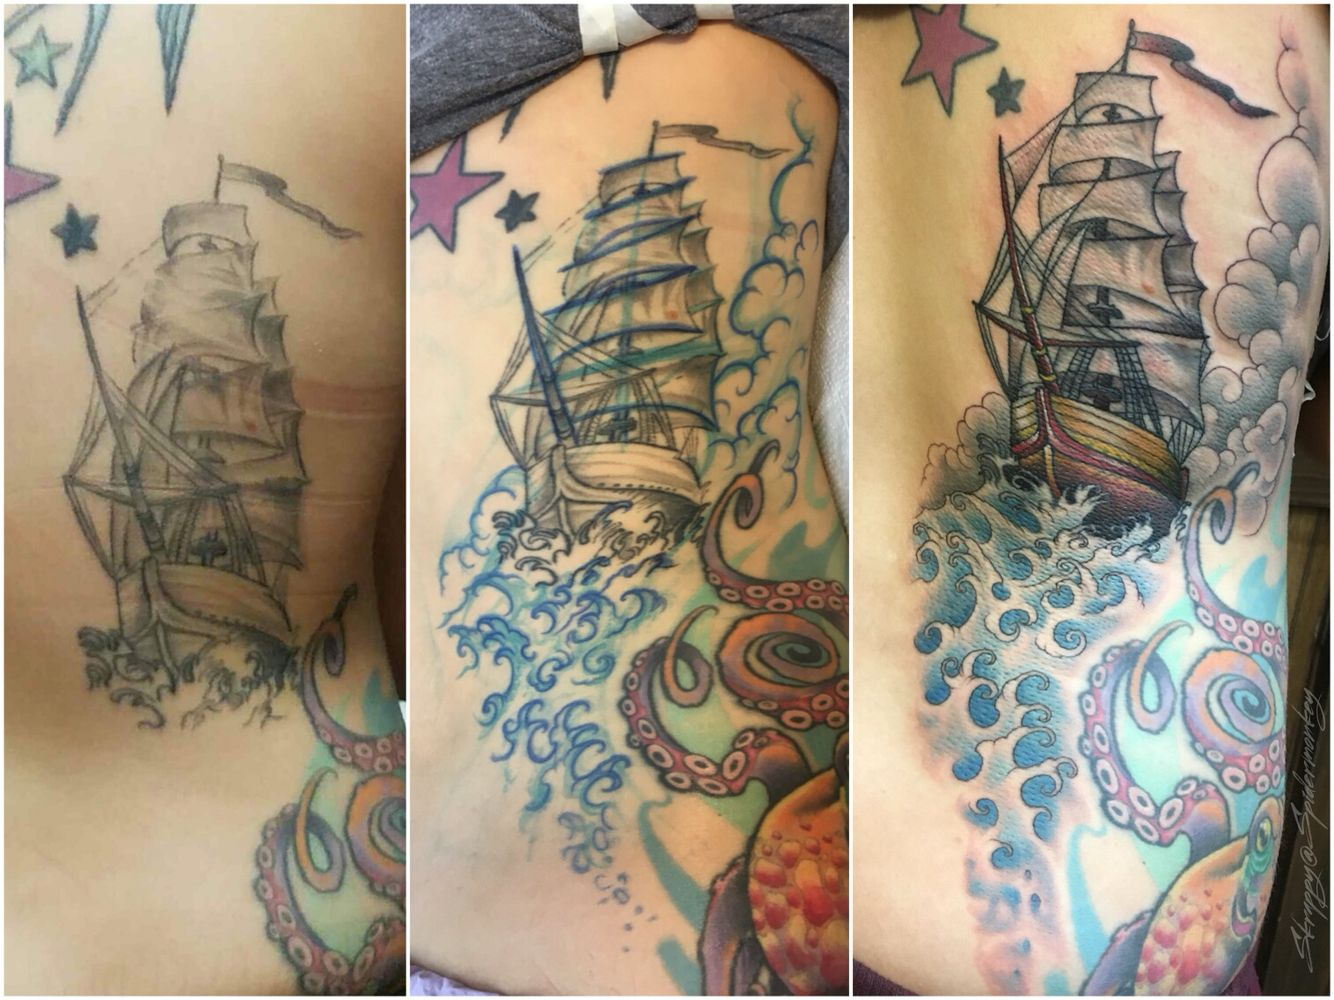 Fix up and add on. #tattoosbyskrappy #skrappyatspidermonkey #fixup #addon #ship #waves #clouds #tattoo #tattoo #coverup #olympiaartist